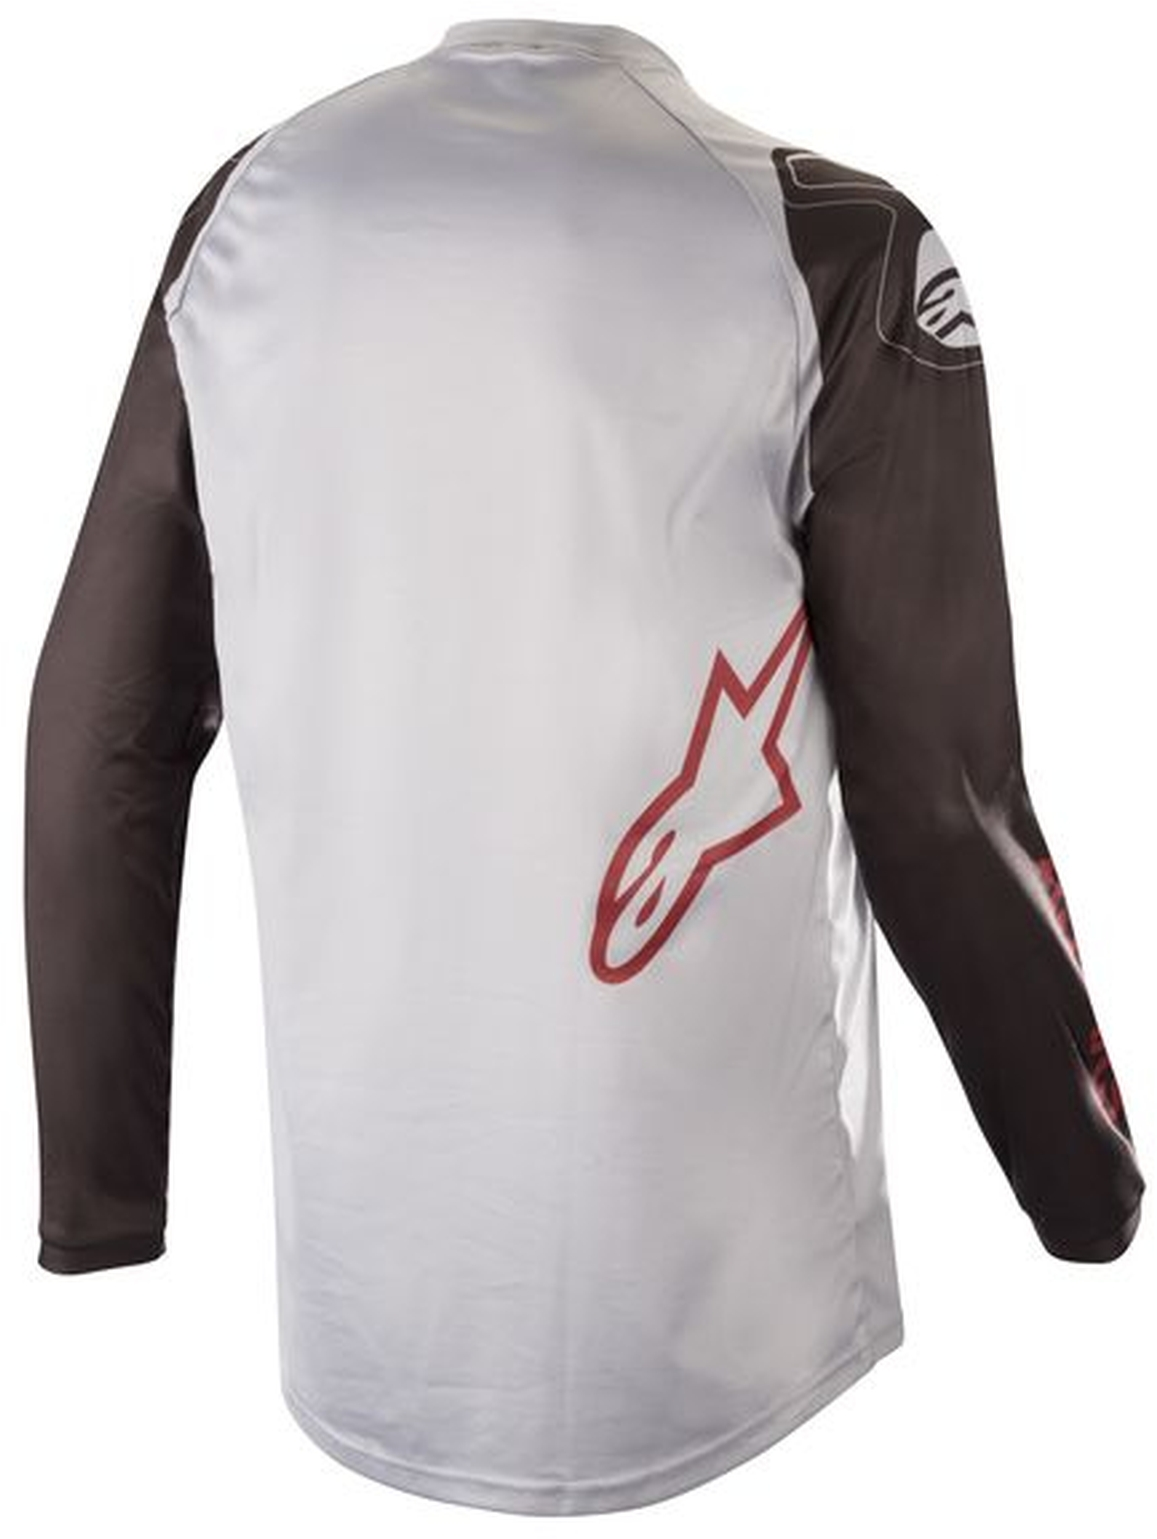 RACER TACTICAL JERSEY